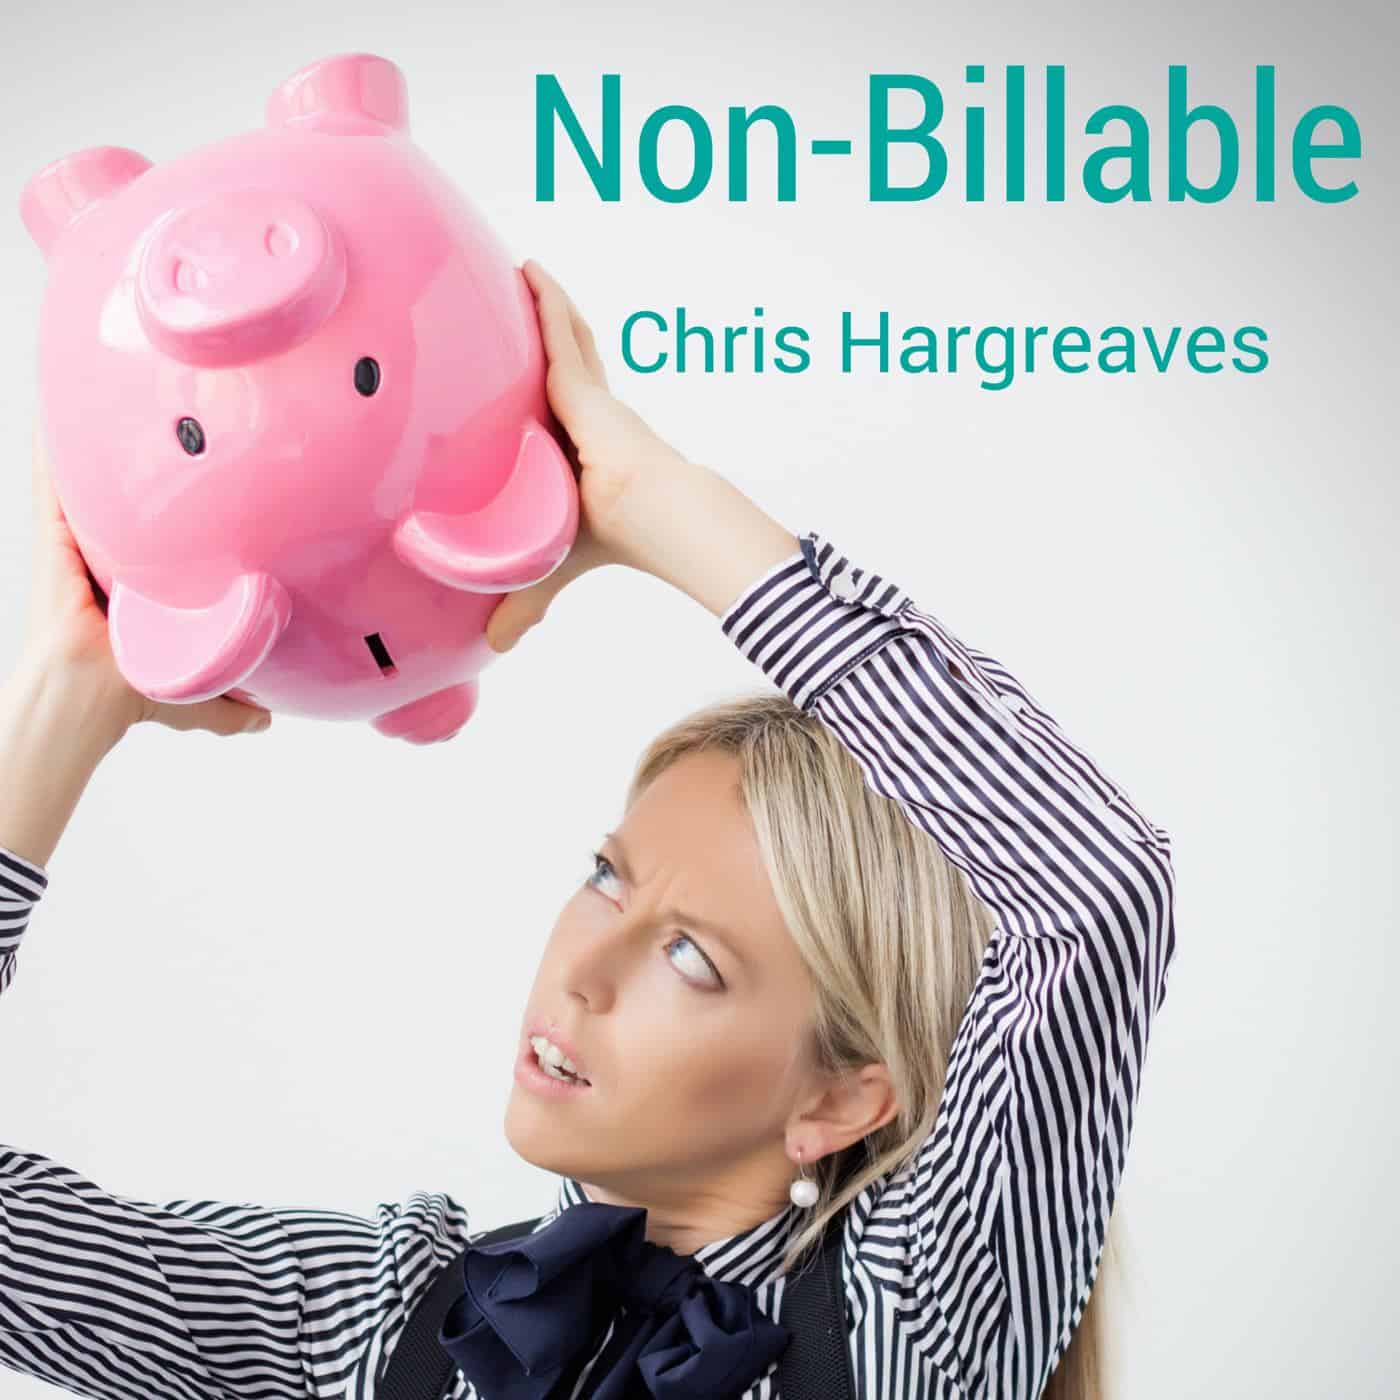 Non-Billable